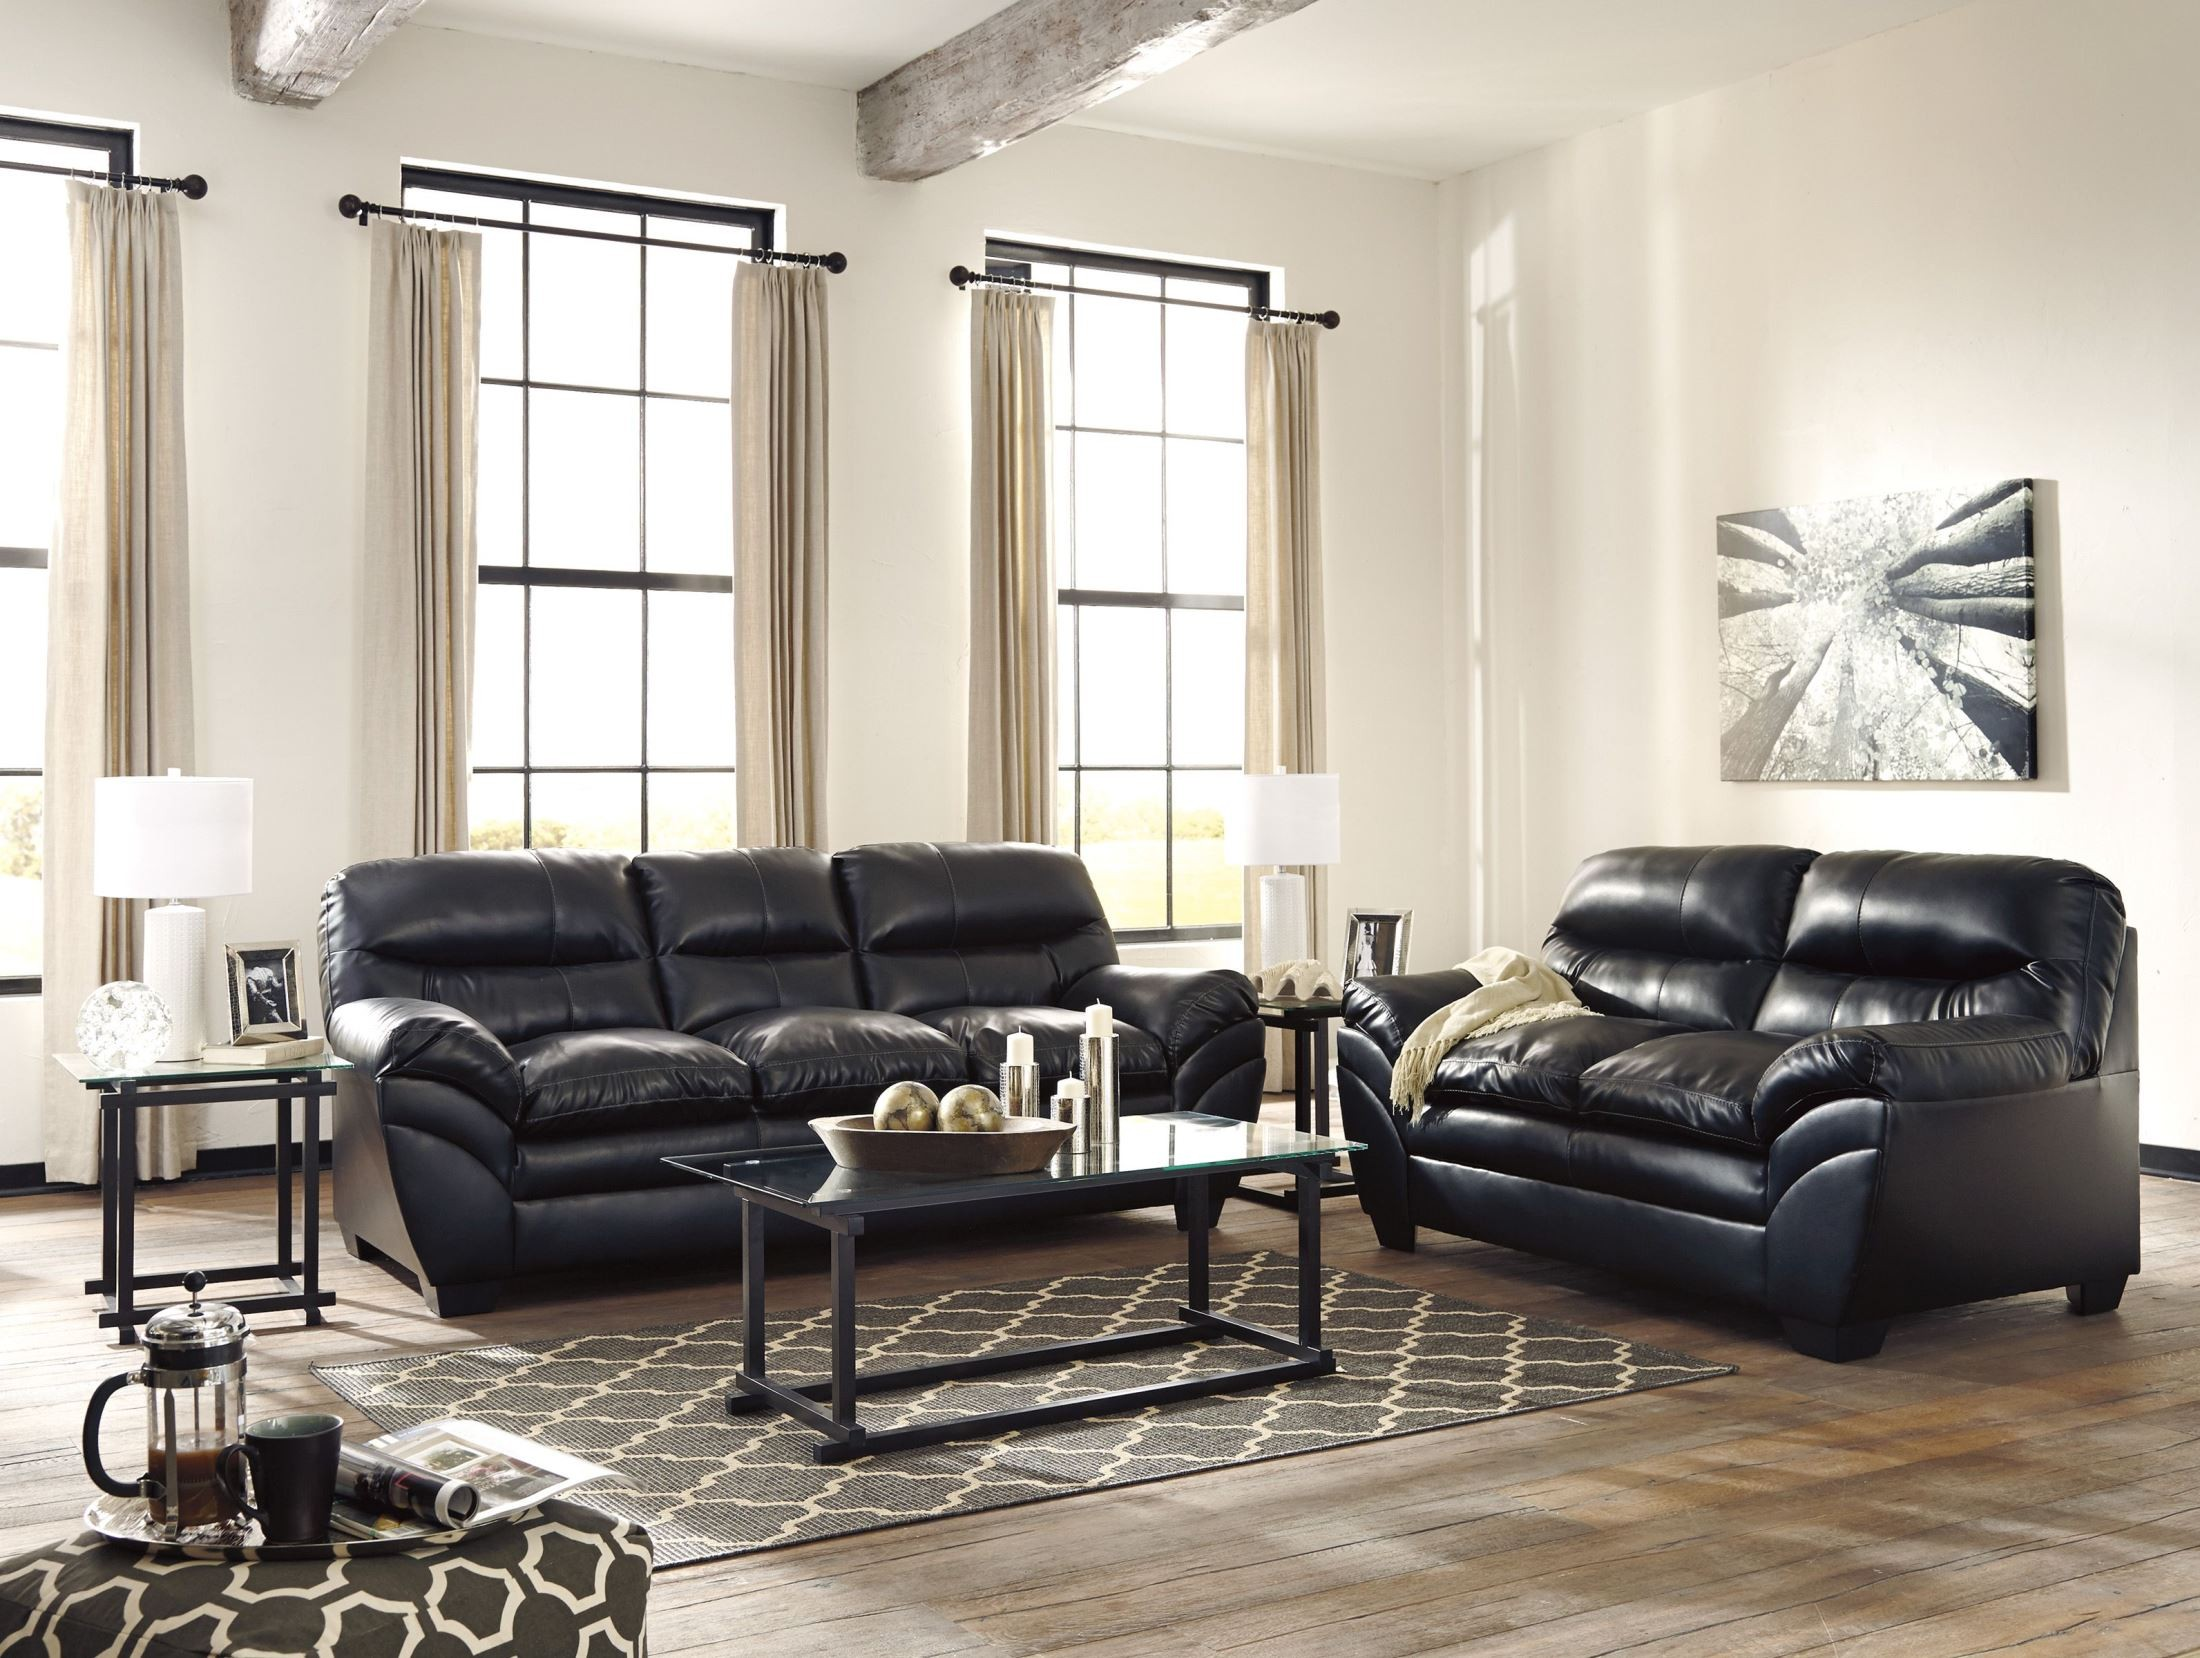 tassler durablend black living room set from ashley 4650138